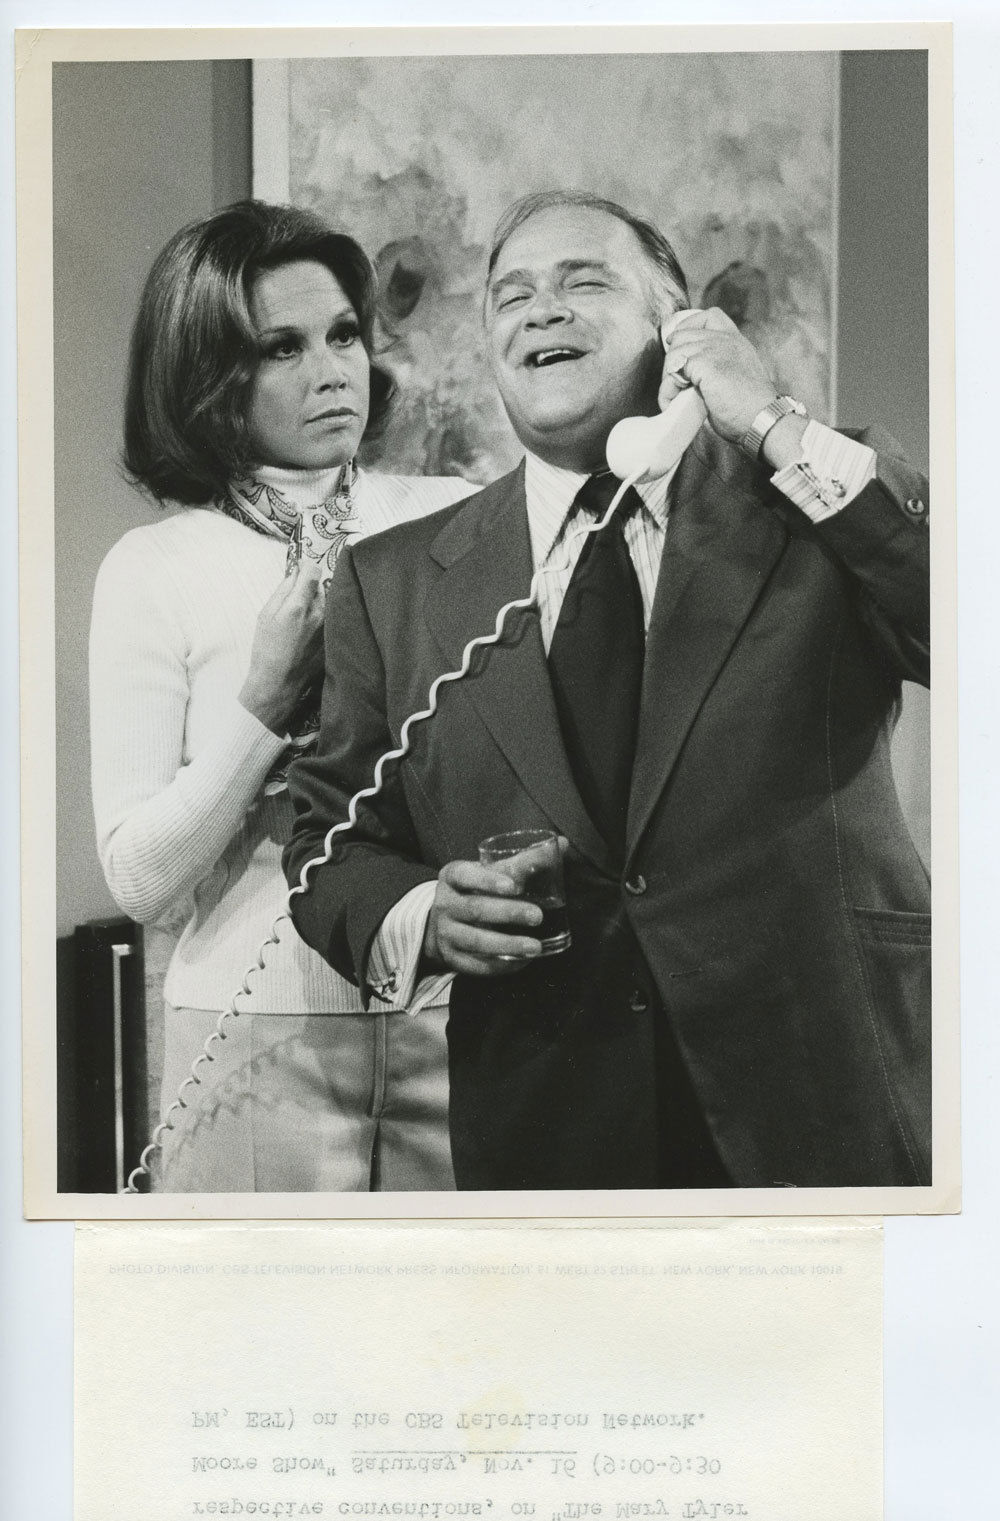 Mary Tyler Moor 1974 Oct 18 CBS TV Show Promo Photo